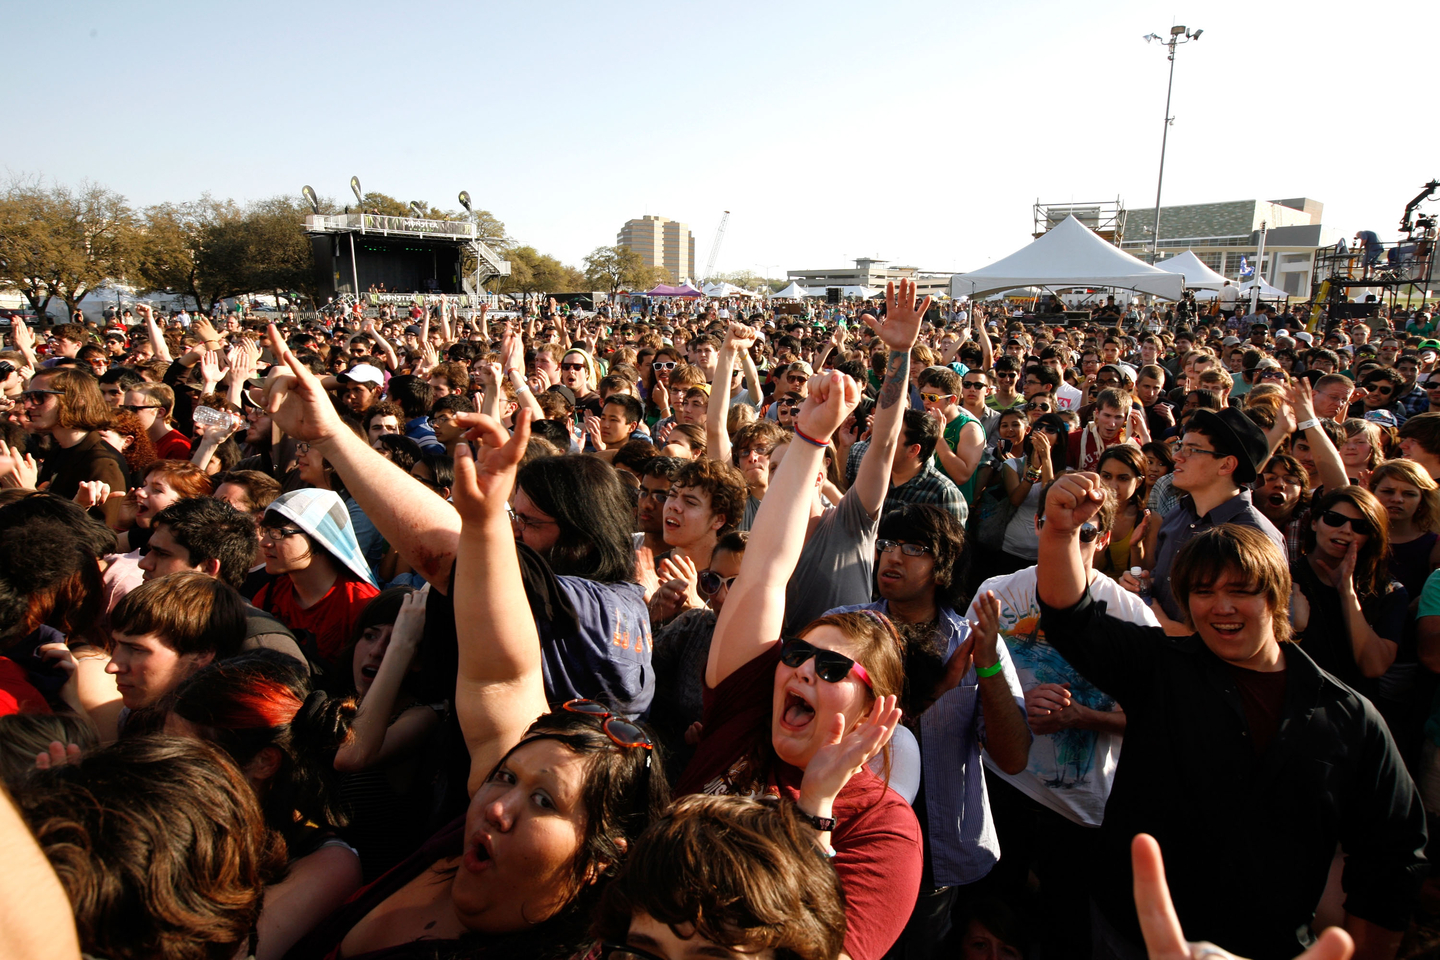 Outdoor Stage, 2011. Photo by Scott Melcer/Getty Images for SXSW